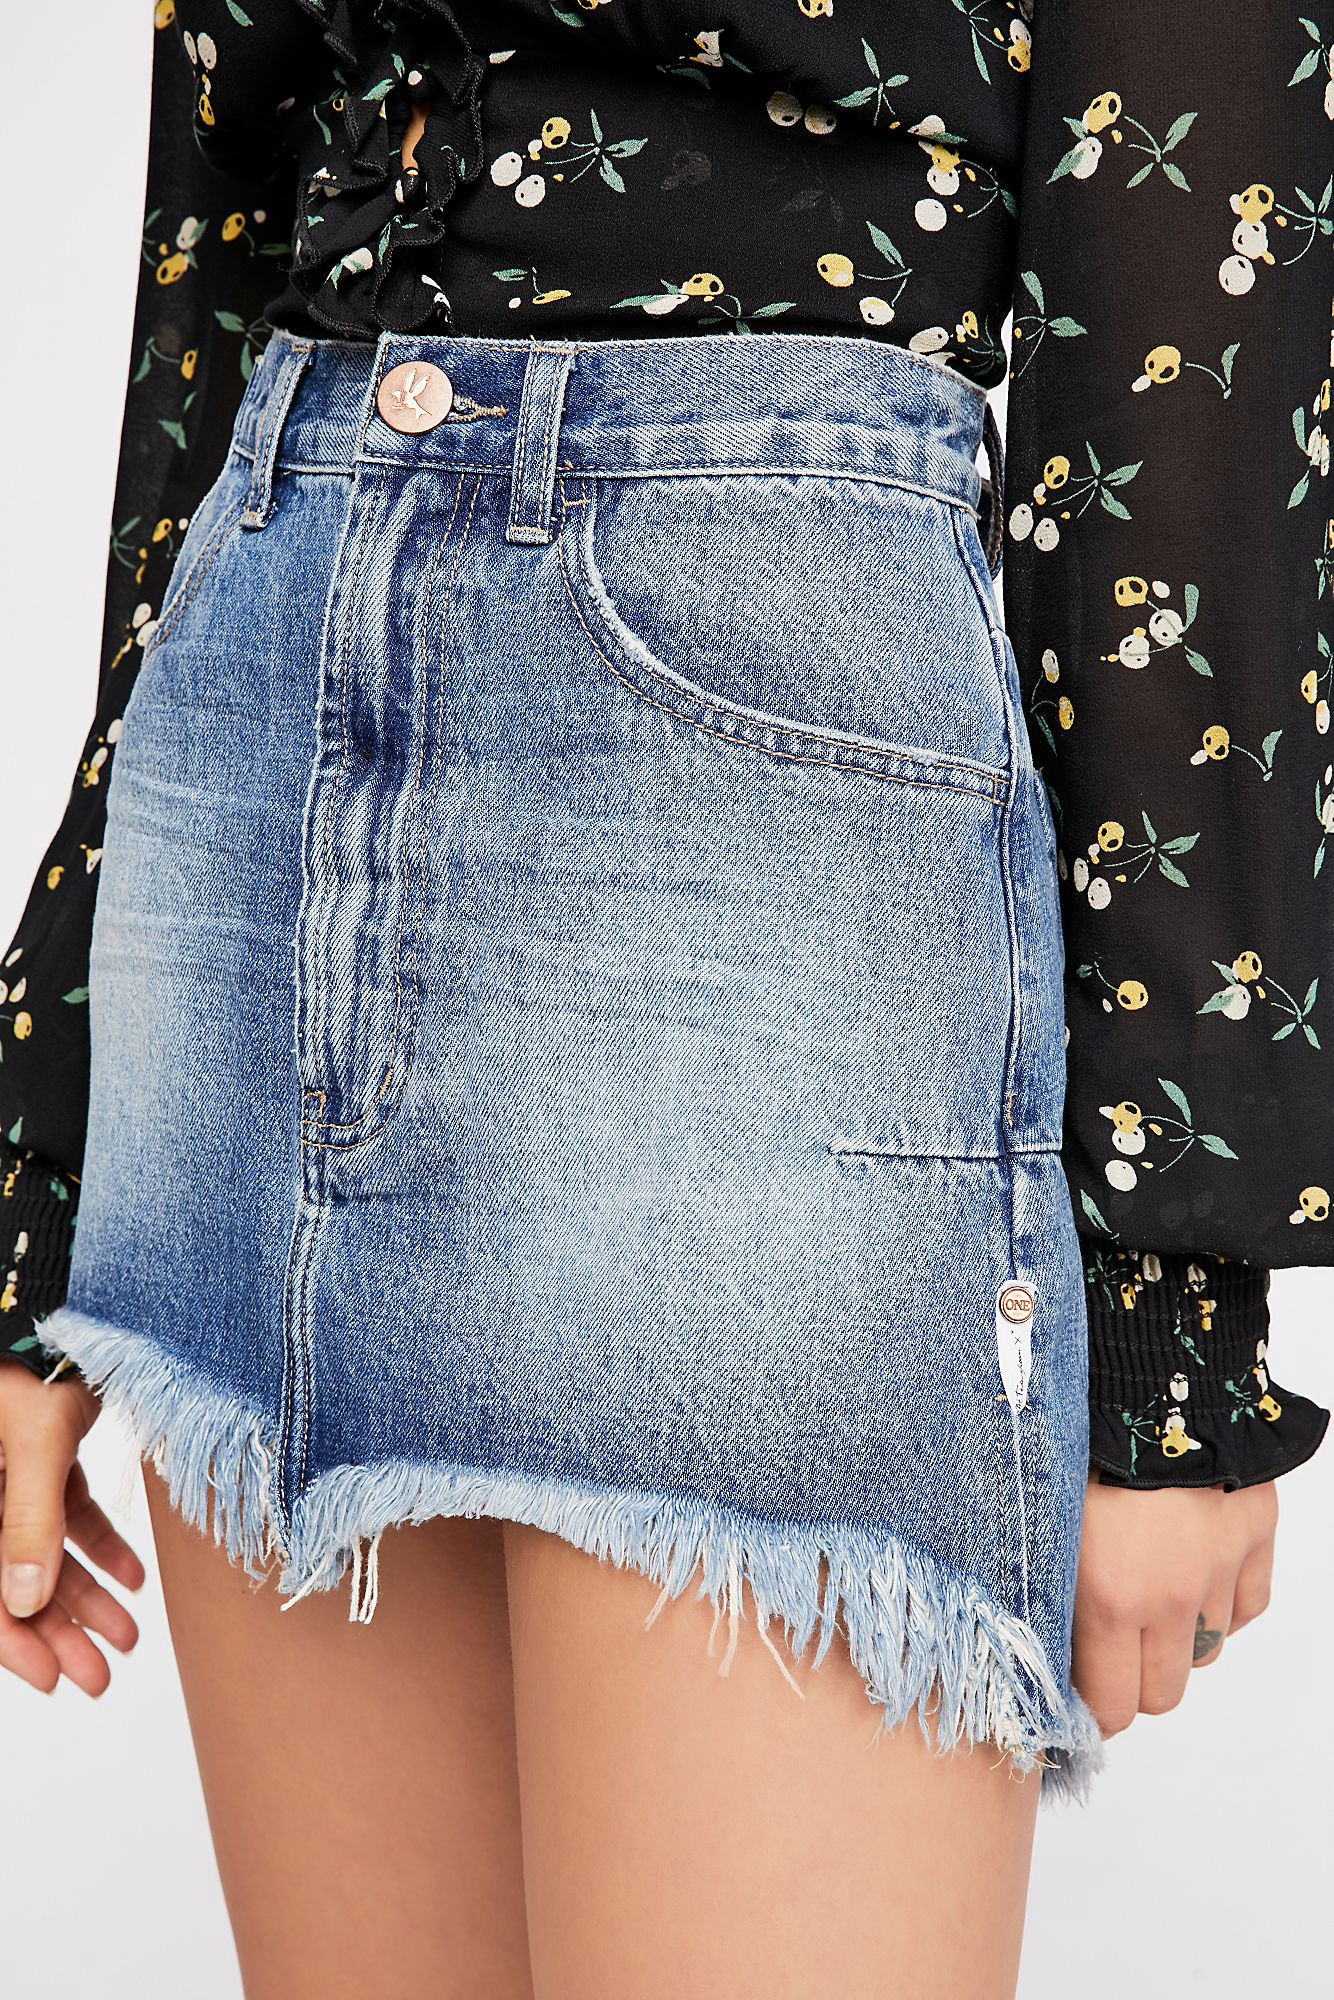 6e0906418 Free People Oneteaspoon Vanguard Mid-Rise Relaxed Skirt - Pacifica ...